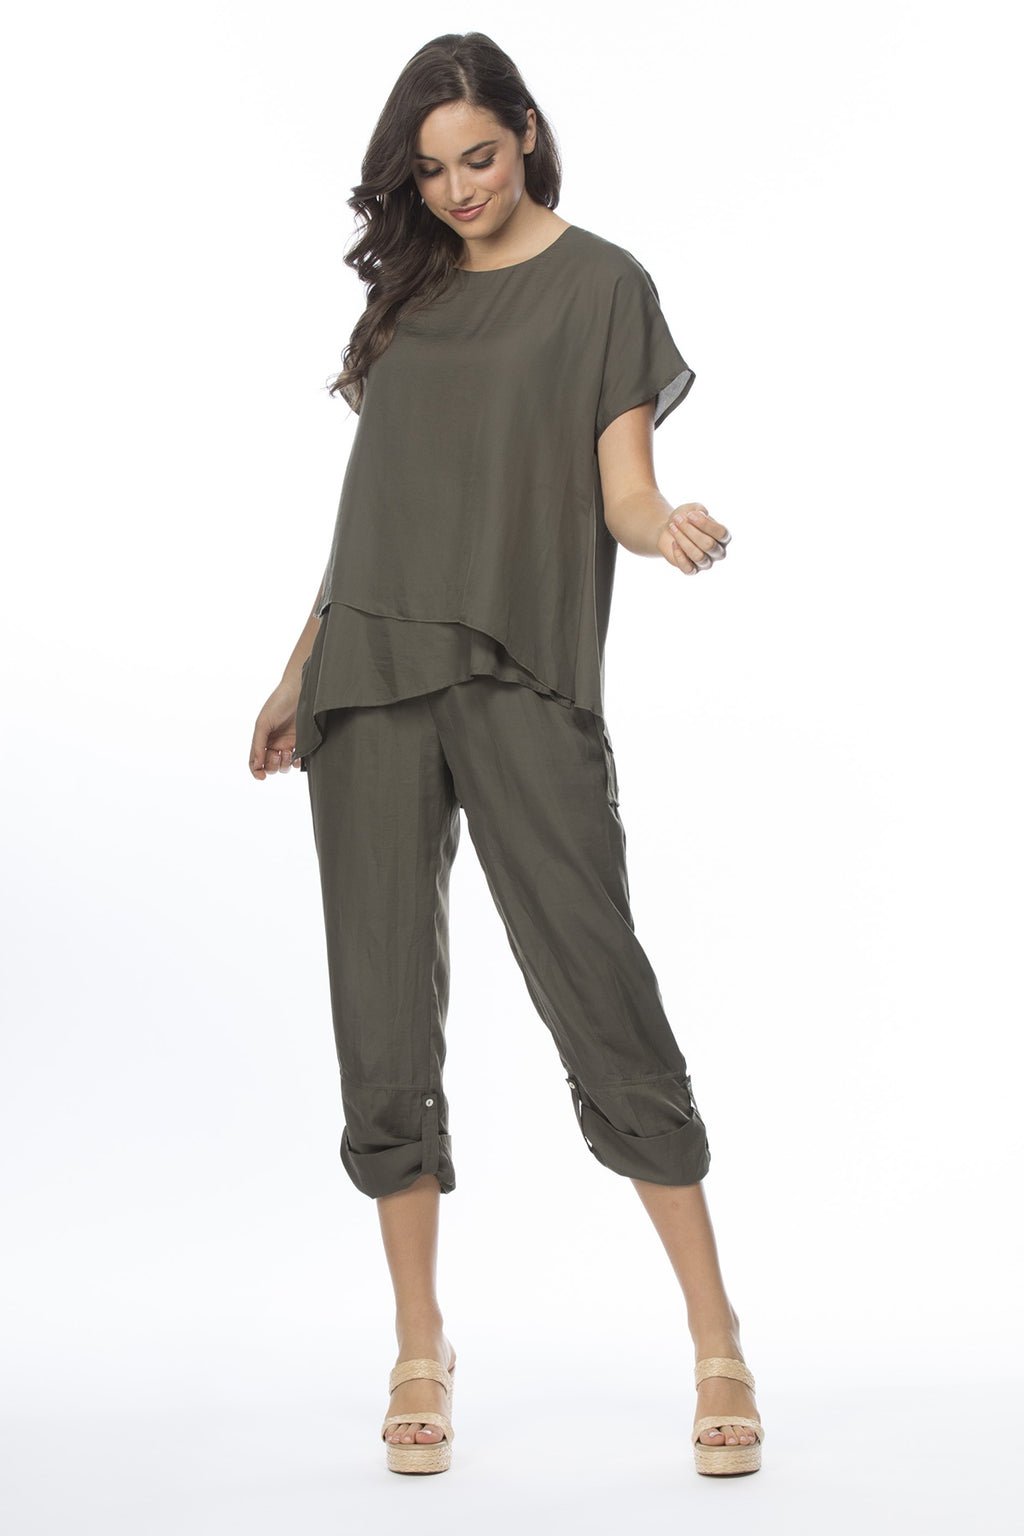 Threadz - Luxe side tab pants - Khaki